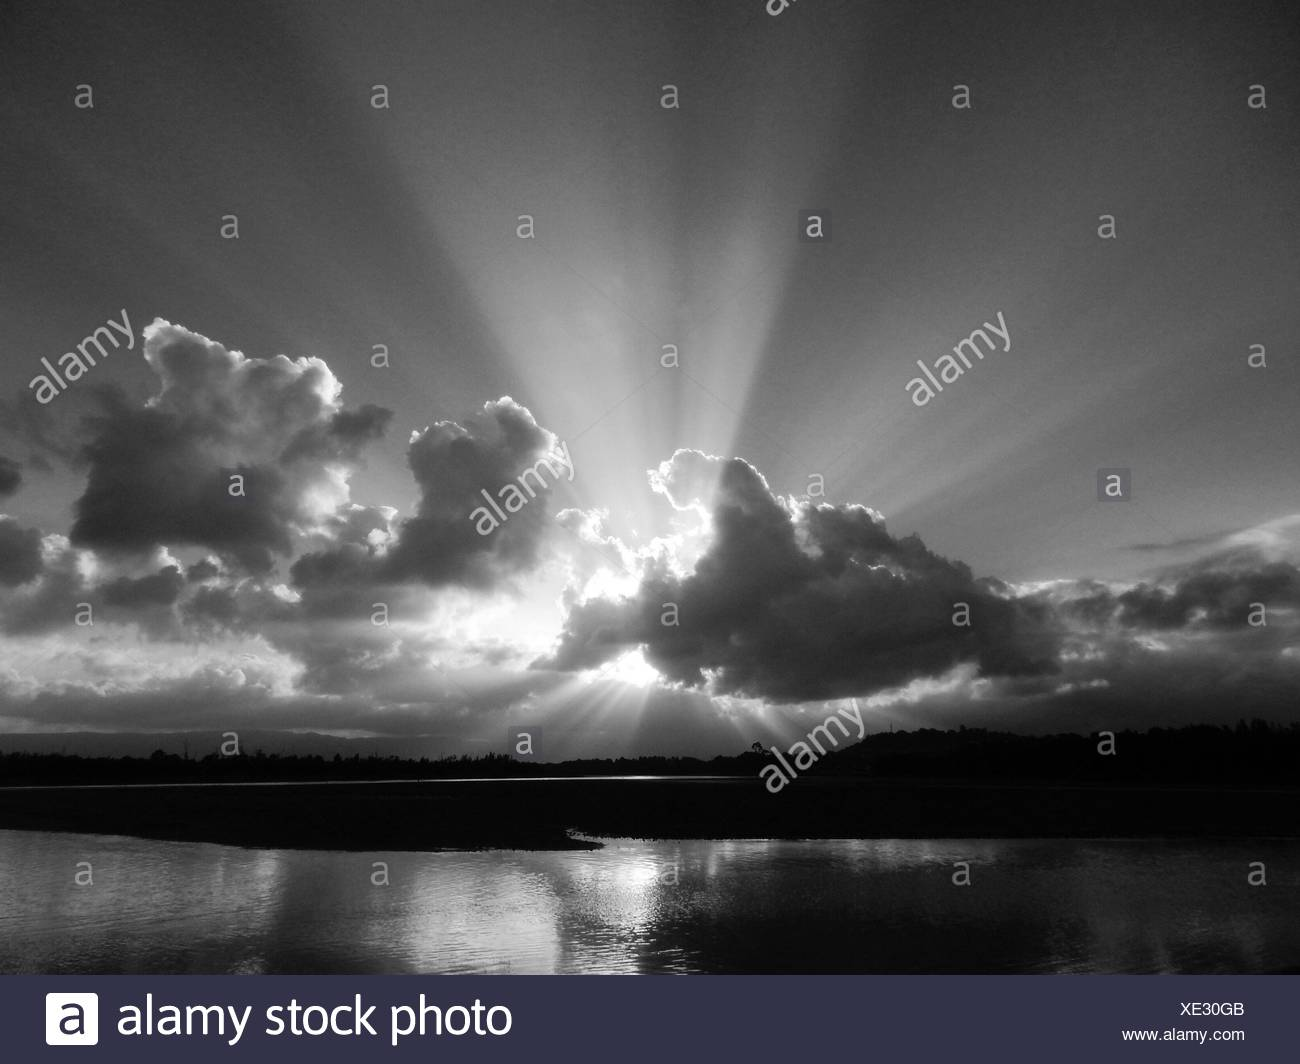 God's Rays Above River - Stock Image